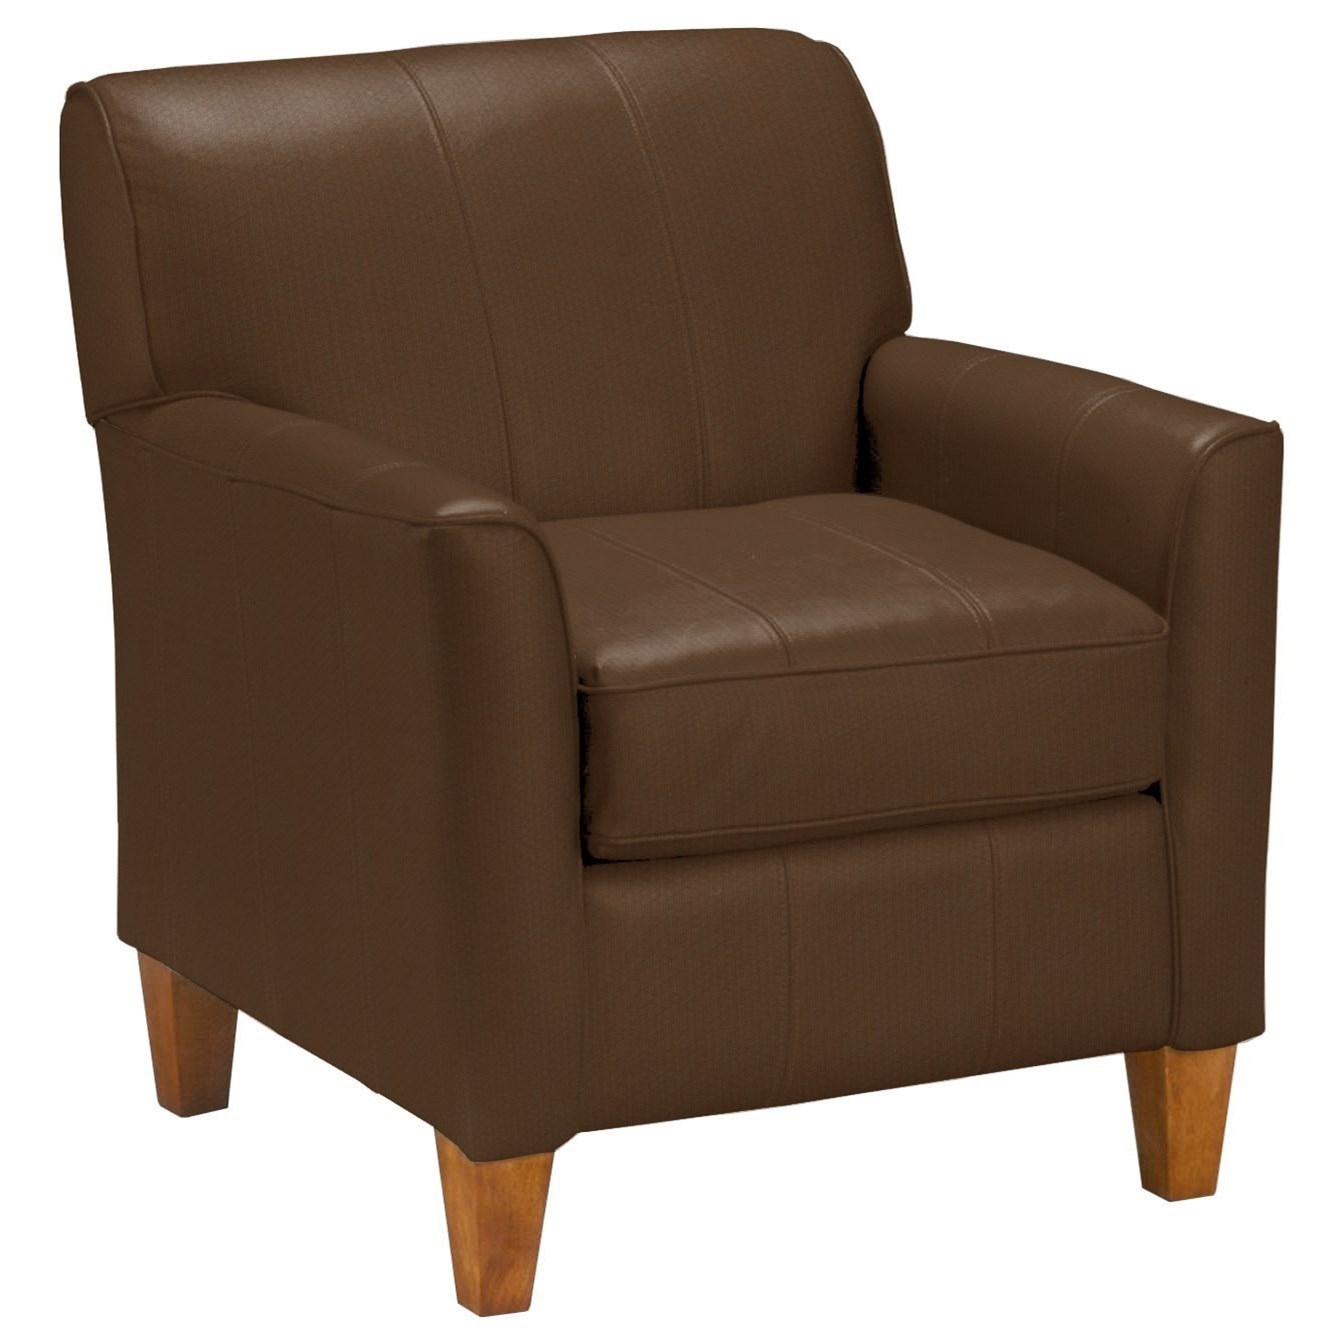 Club Chairs Risa Club Chair by Best Home Furnishings at Westrich Furniture & Appliances